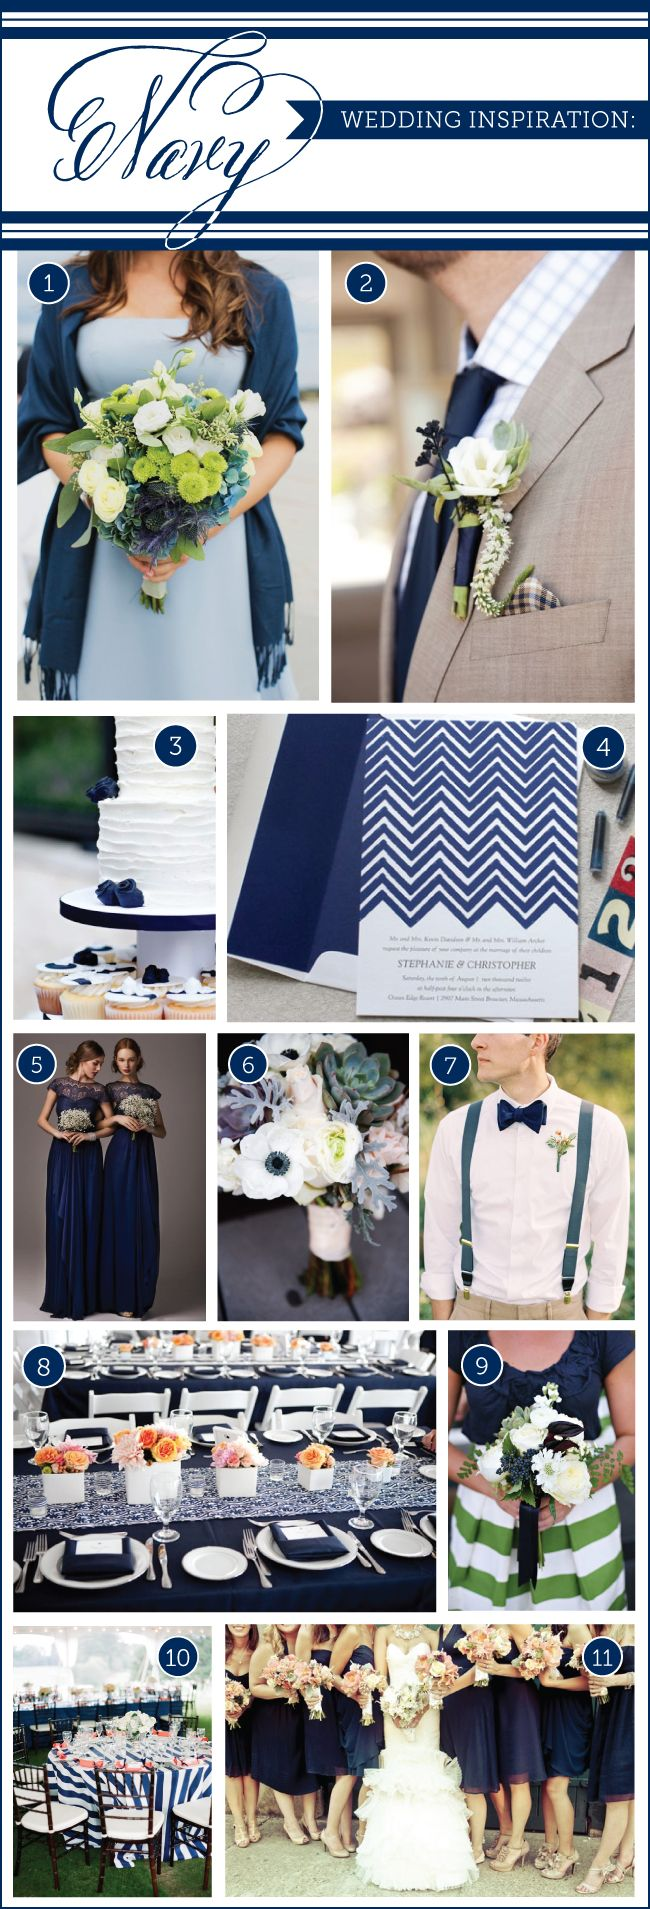 Inspiration for a navy blue wedding with Chevron wedding invitation by Delphine